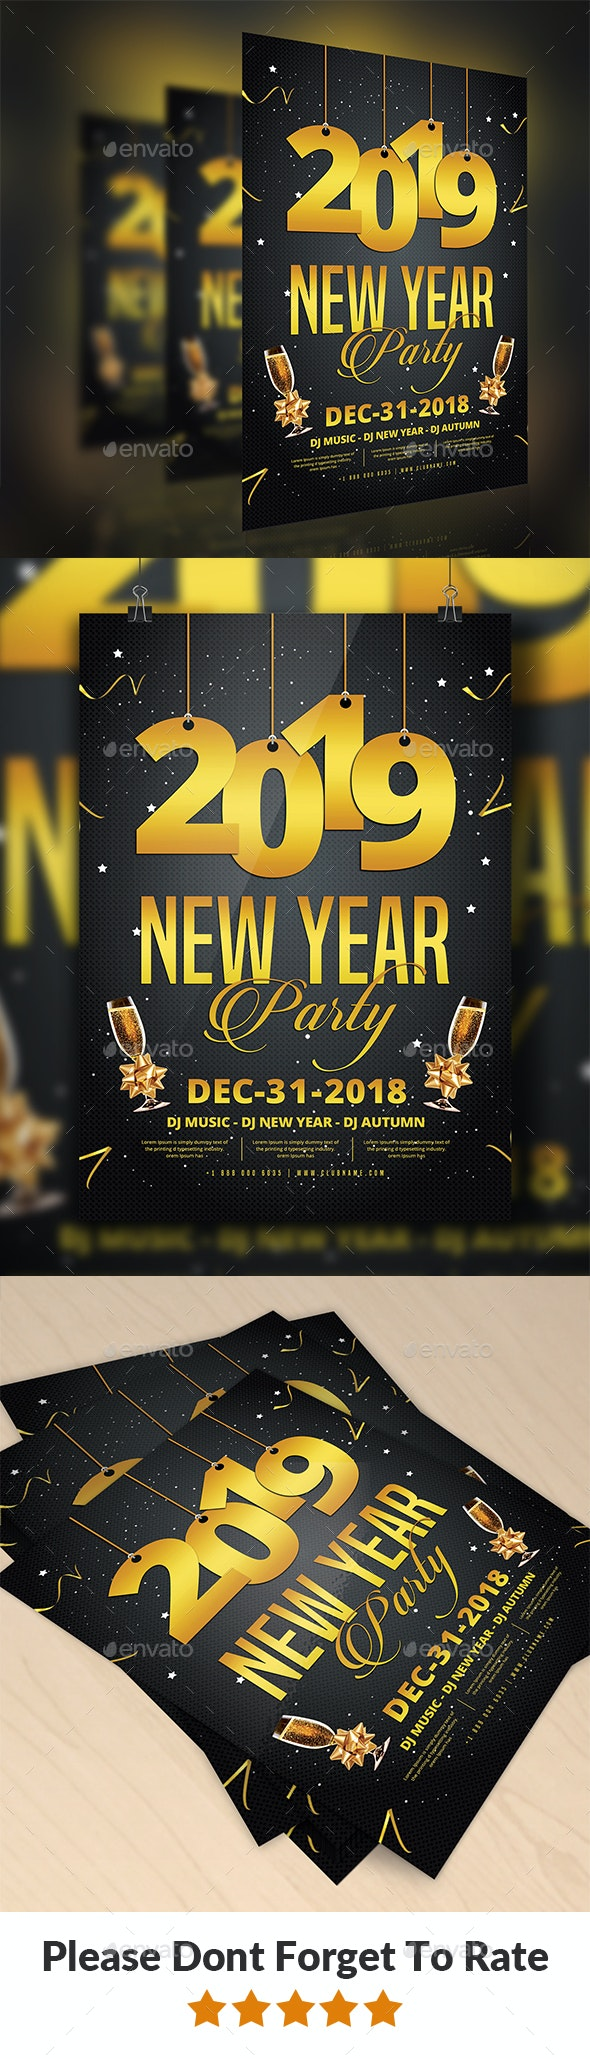 2019 New Year Party Flyer - Events Flyers